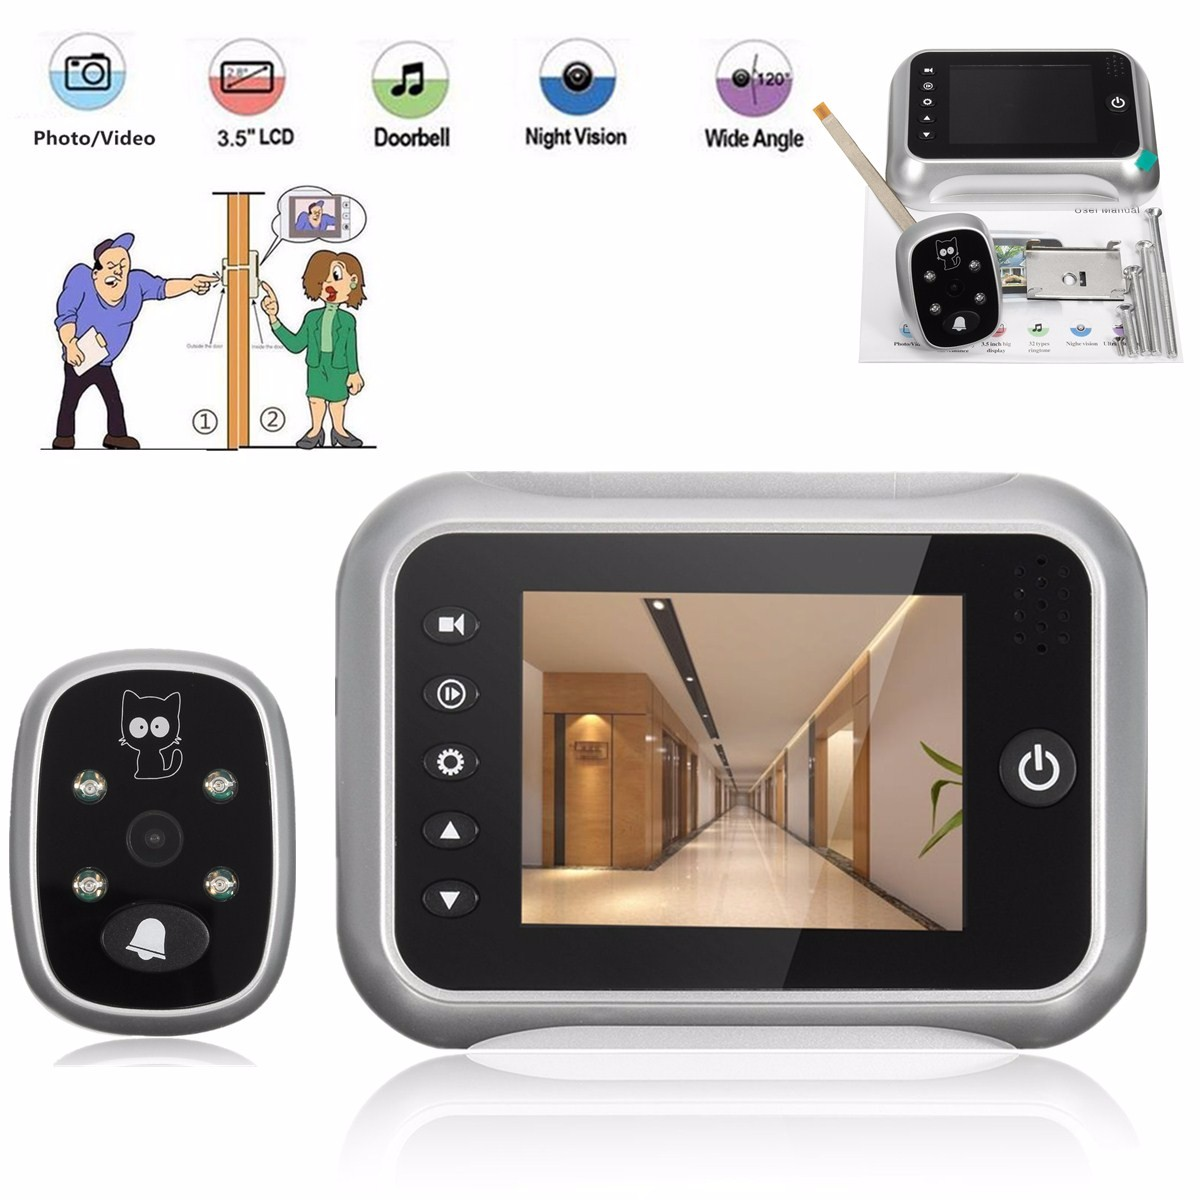 3.5inch LCD Peephole Viewer Doorbell Home Security Monitor IR Camera Night Vision